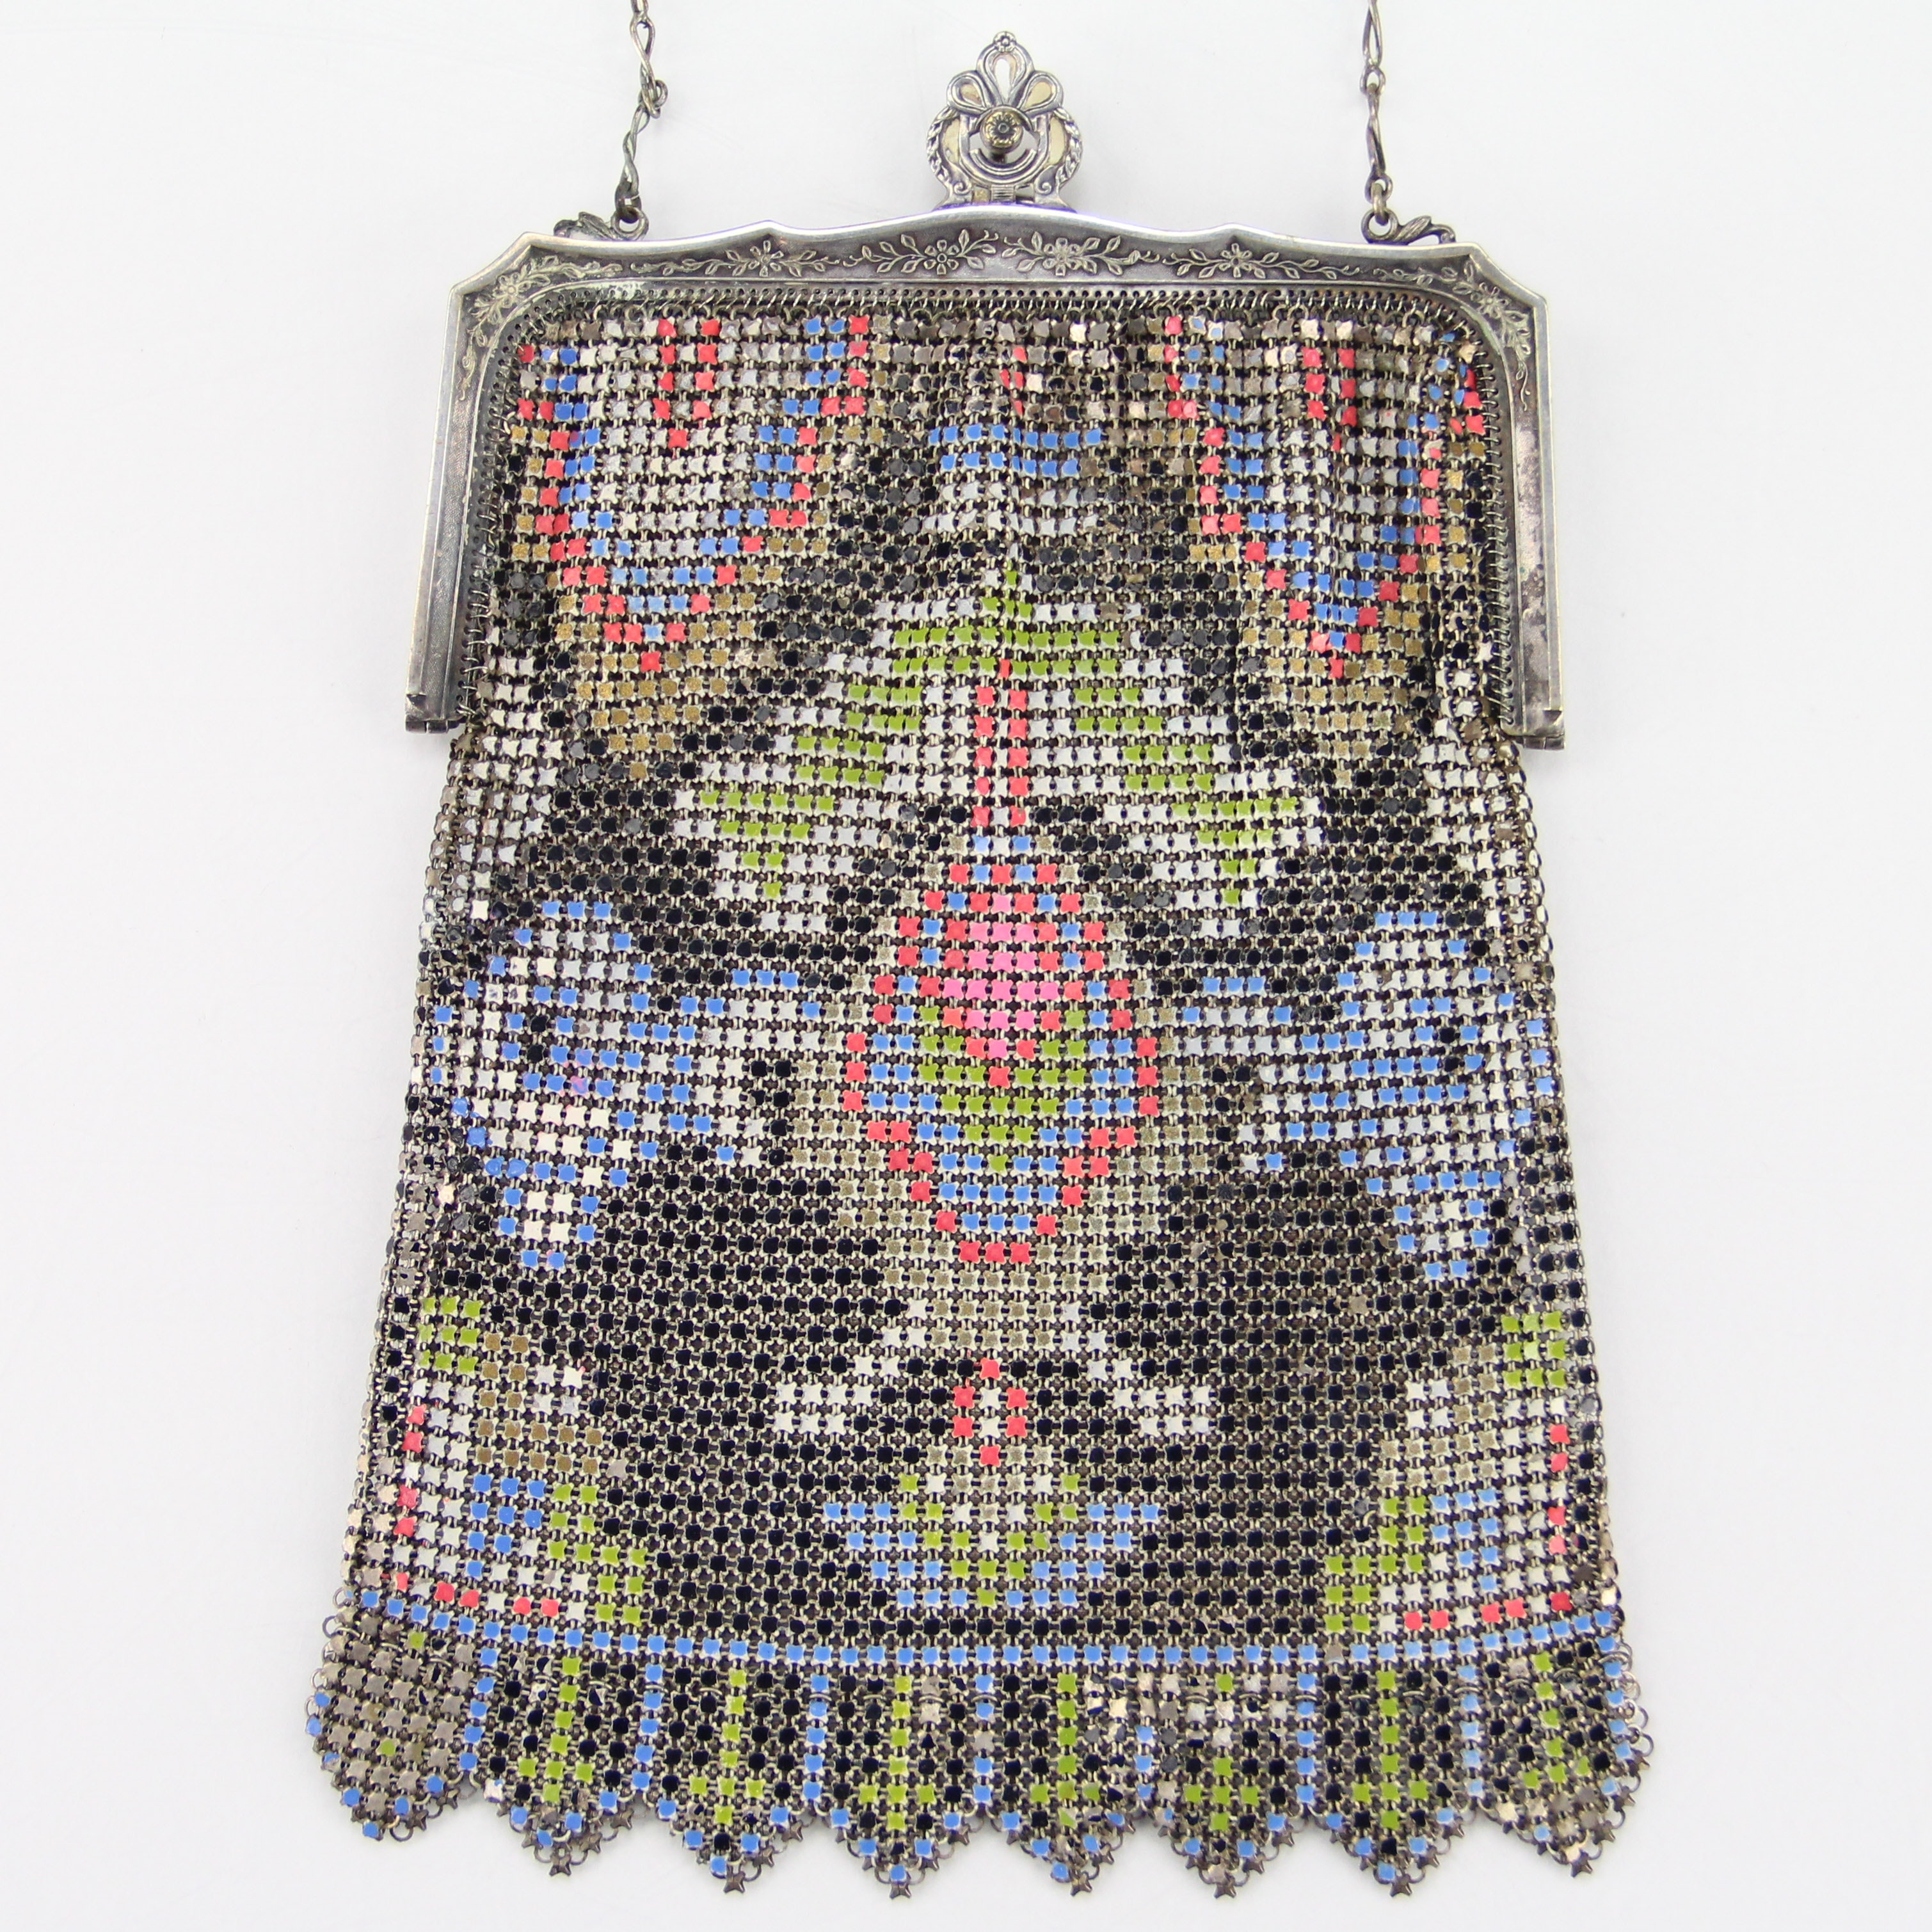 Vintage Enameled Mesh Purse from Whiting & Davis Co.